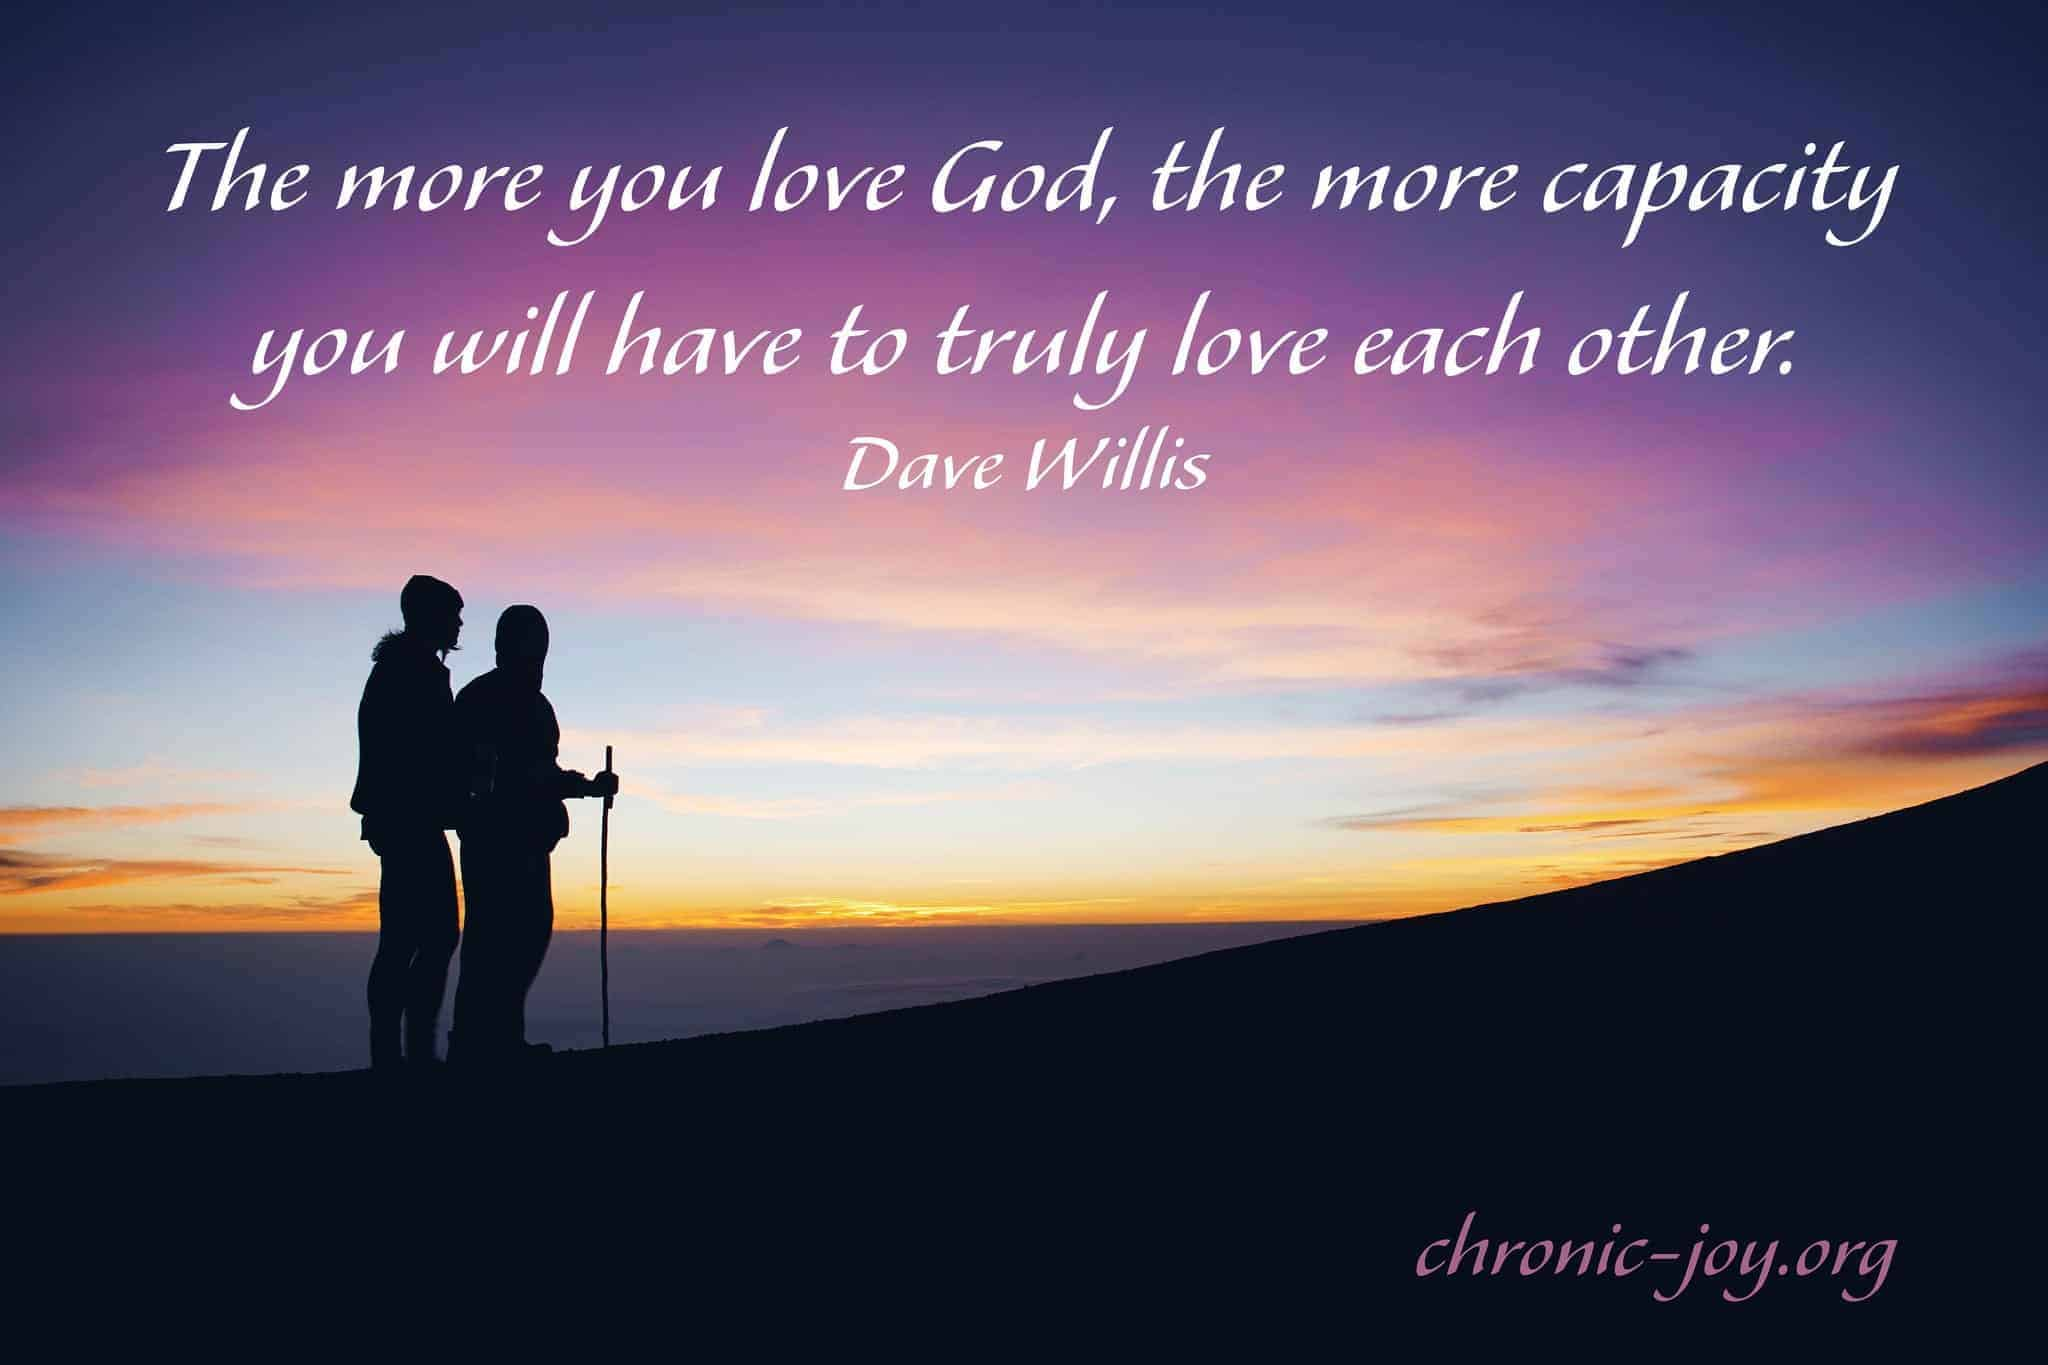 The more you love God...